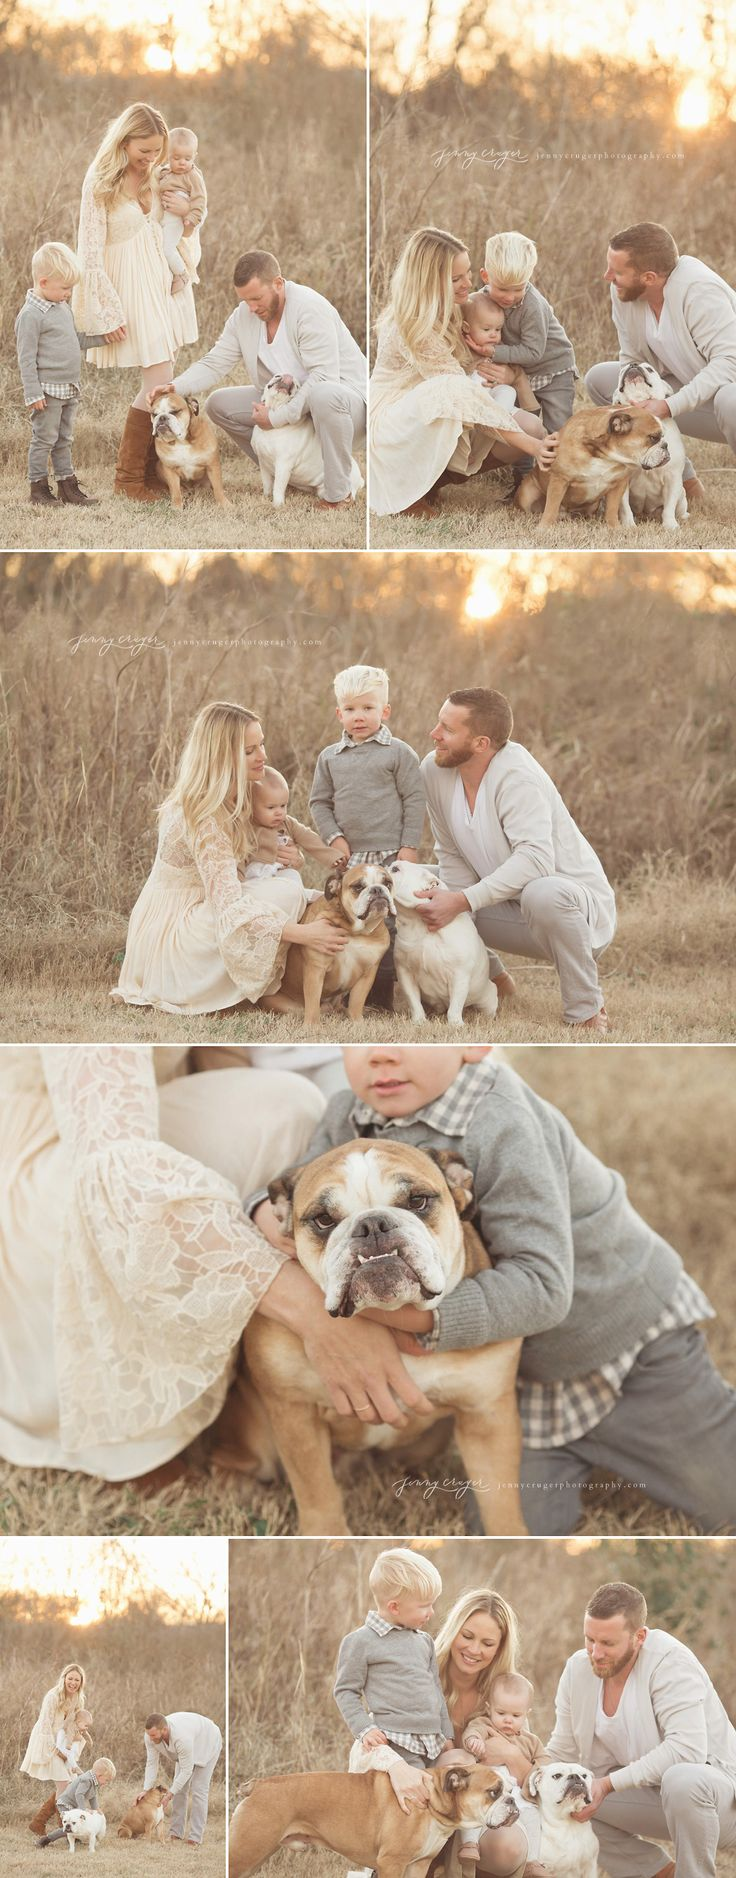 Jenny Cruger Photography specializes in organic and natural newborn, baby, maternity, family, and child photography in Nashville, TN and surrounding areas including but not limited to Franklin, Brentwood, Green Hills, Spring Hill and Thompson's Station.